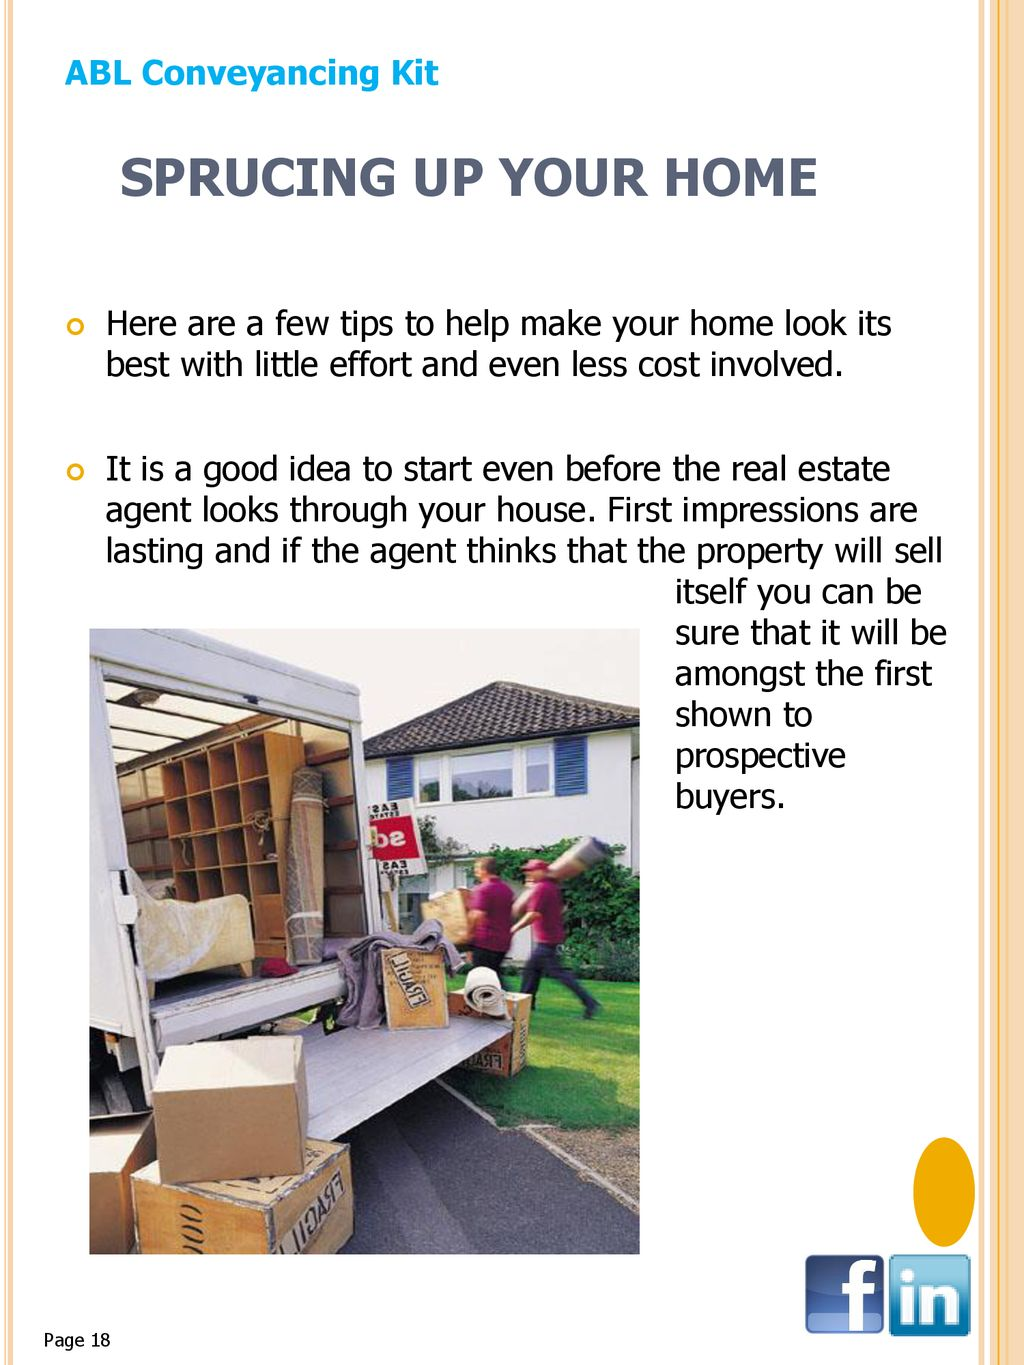 Anderson boemi lawyers ppt download sprucing up your home abl conveyancing kit solutioingenieria Images